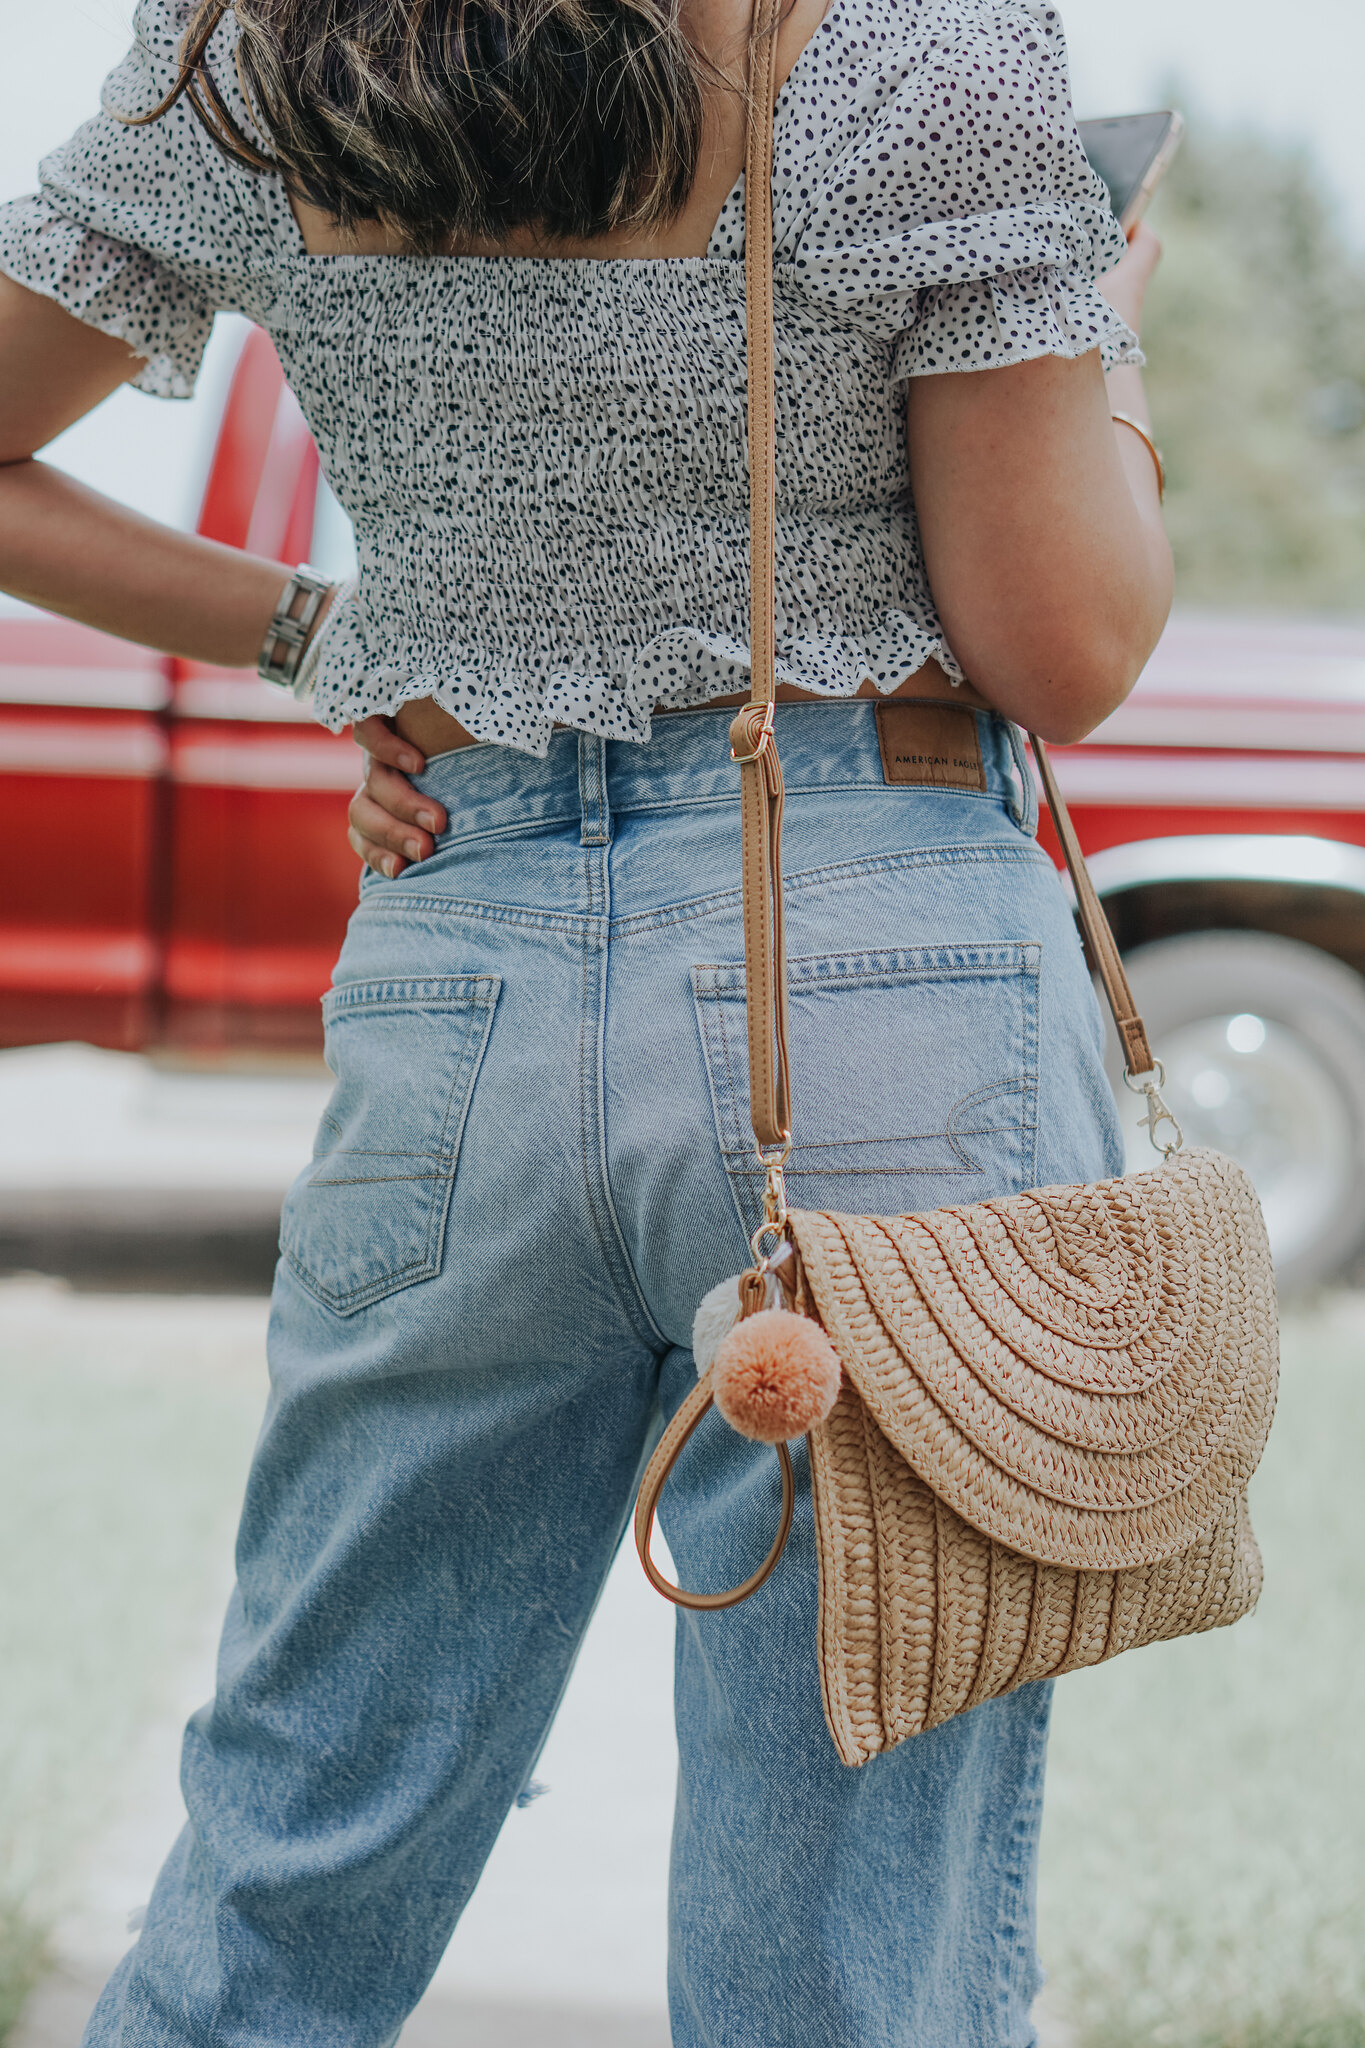 How To Style Mom Jeans— 7 Outfit Ideas